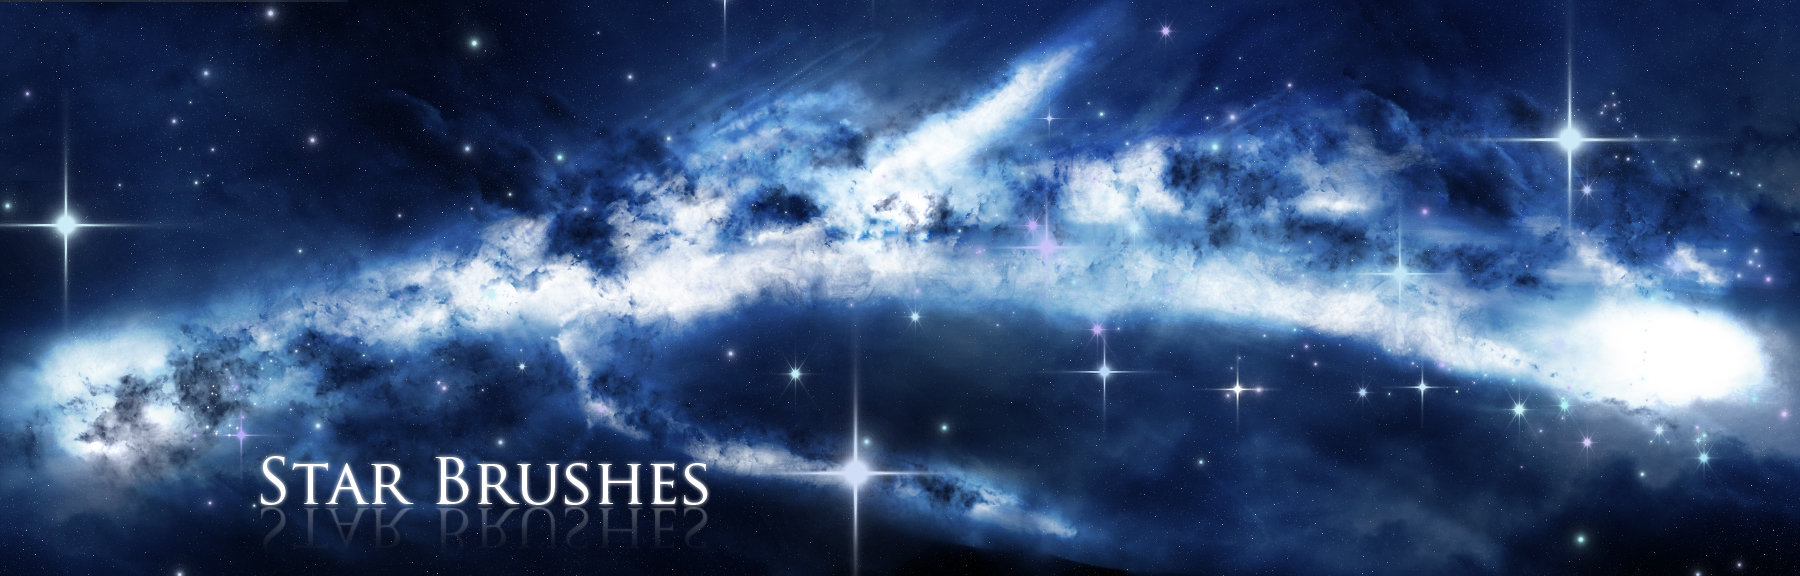 star_brushes_by_demosthenesvoice